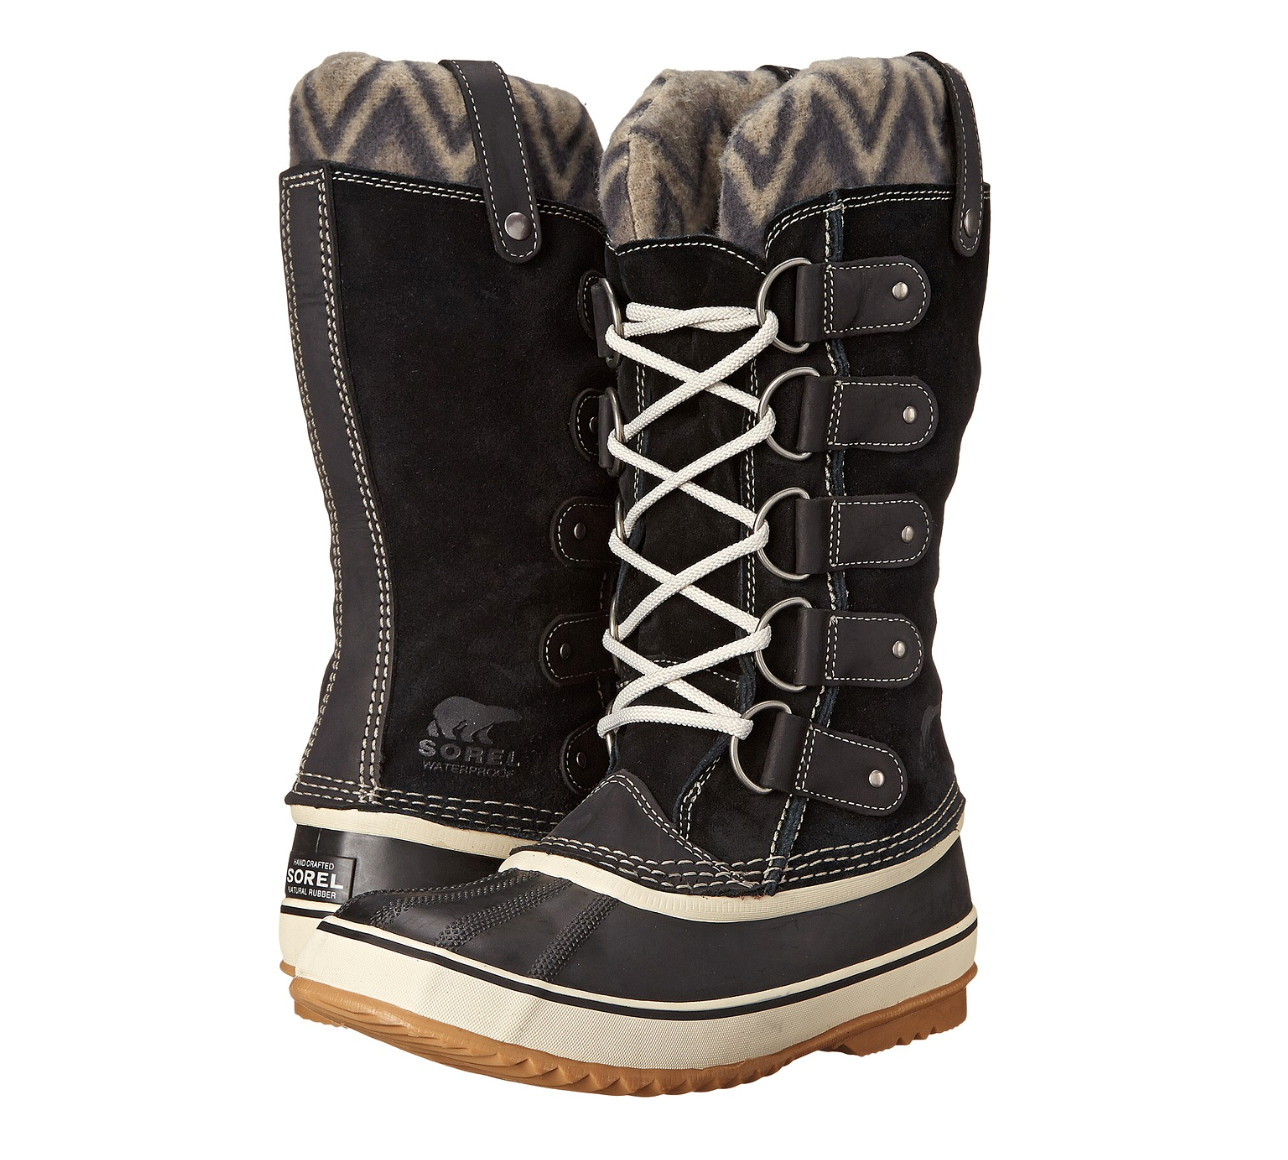 80% di sconto Sorel Joan Of Arctic Knit II II II stivali Donna  6 nero Suede Leather Winter Snow  disegni esclusivi